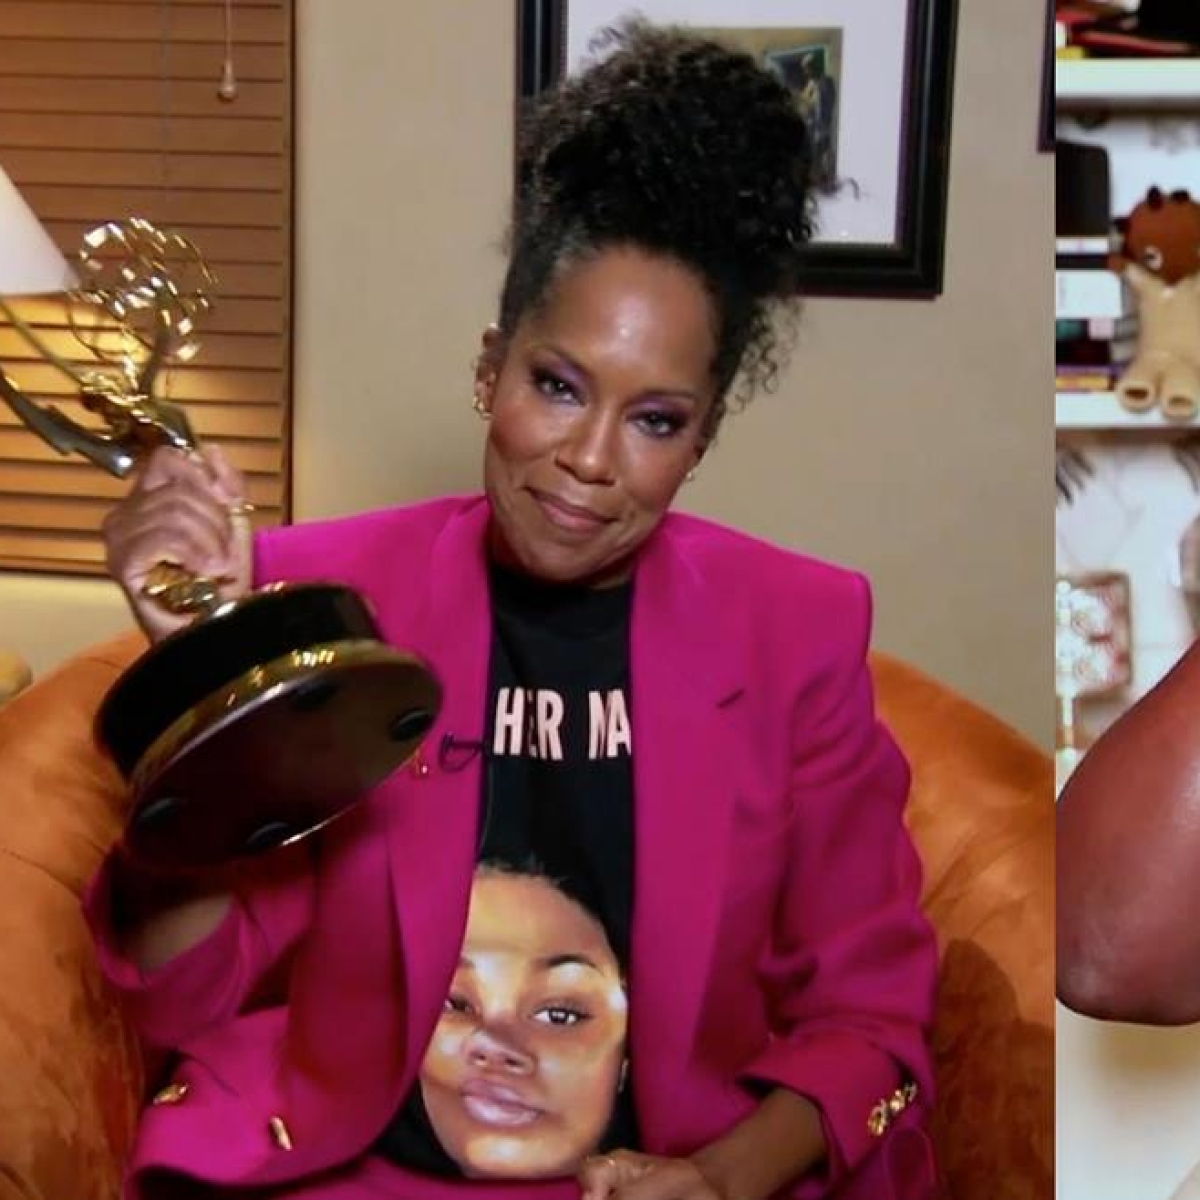 From Regina King to Uzo Aduba, Emmys 2020 set record for most wins by Black actors